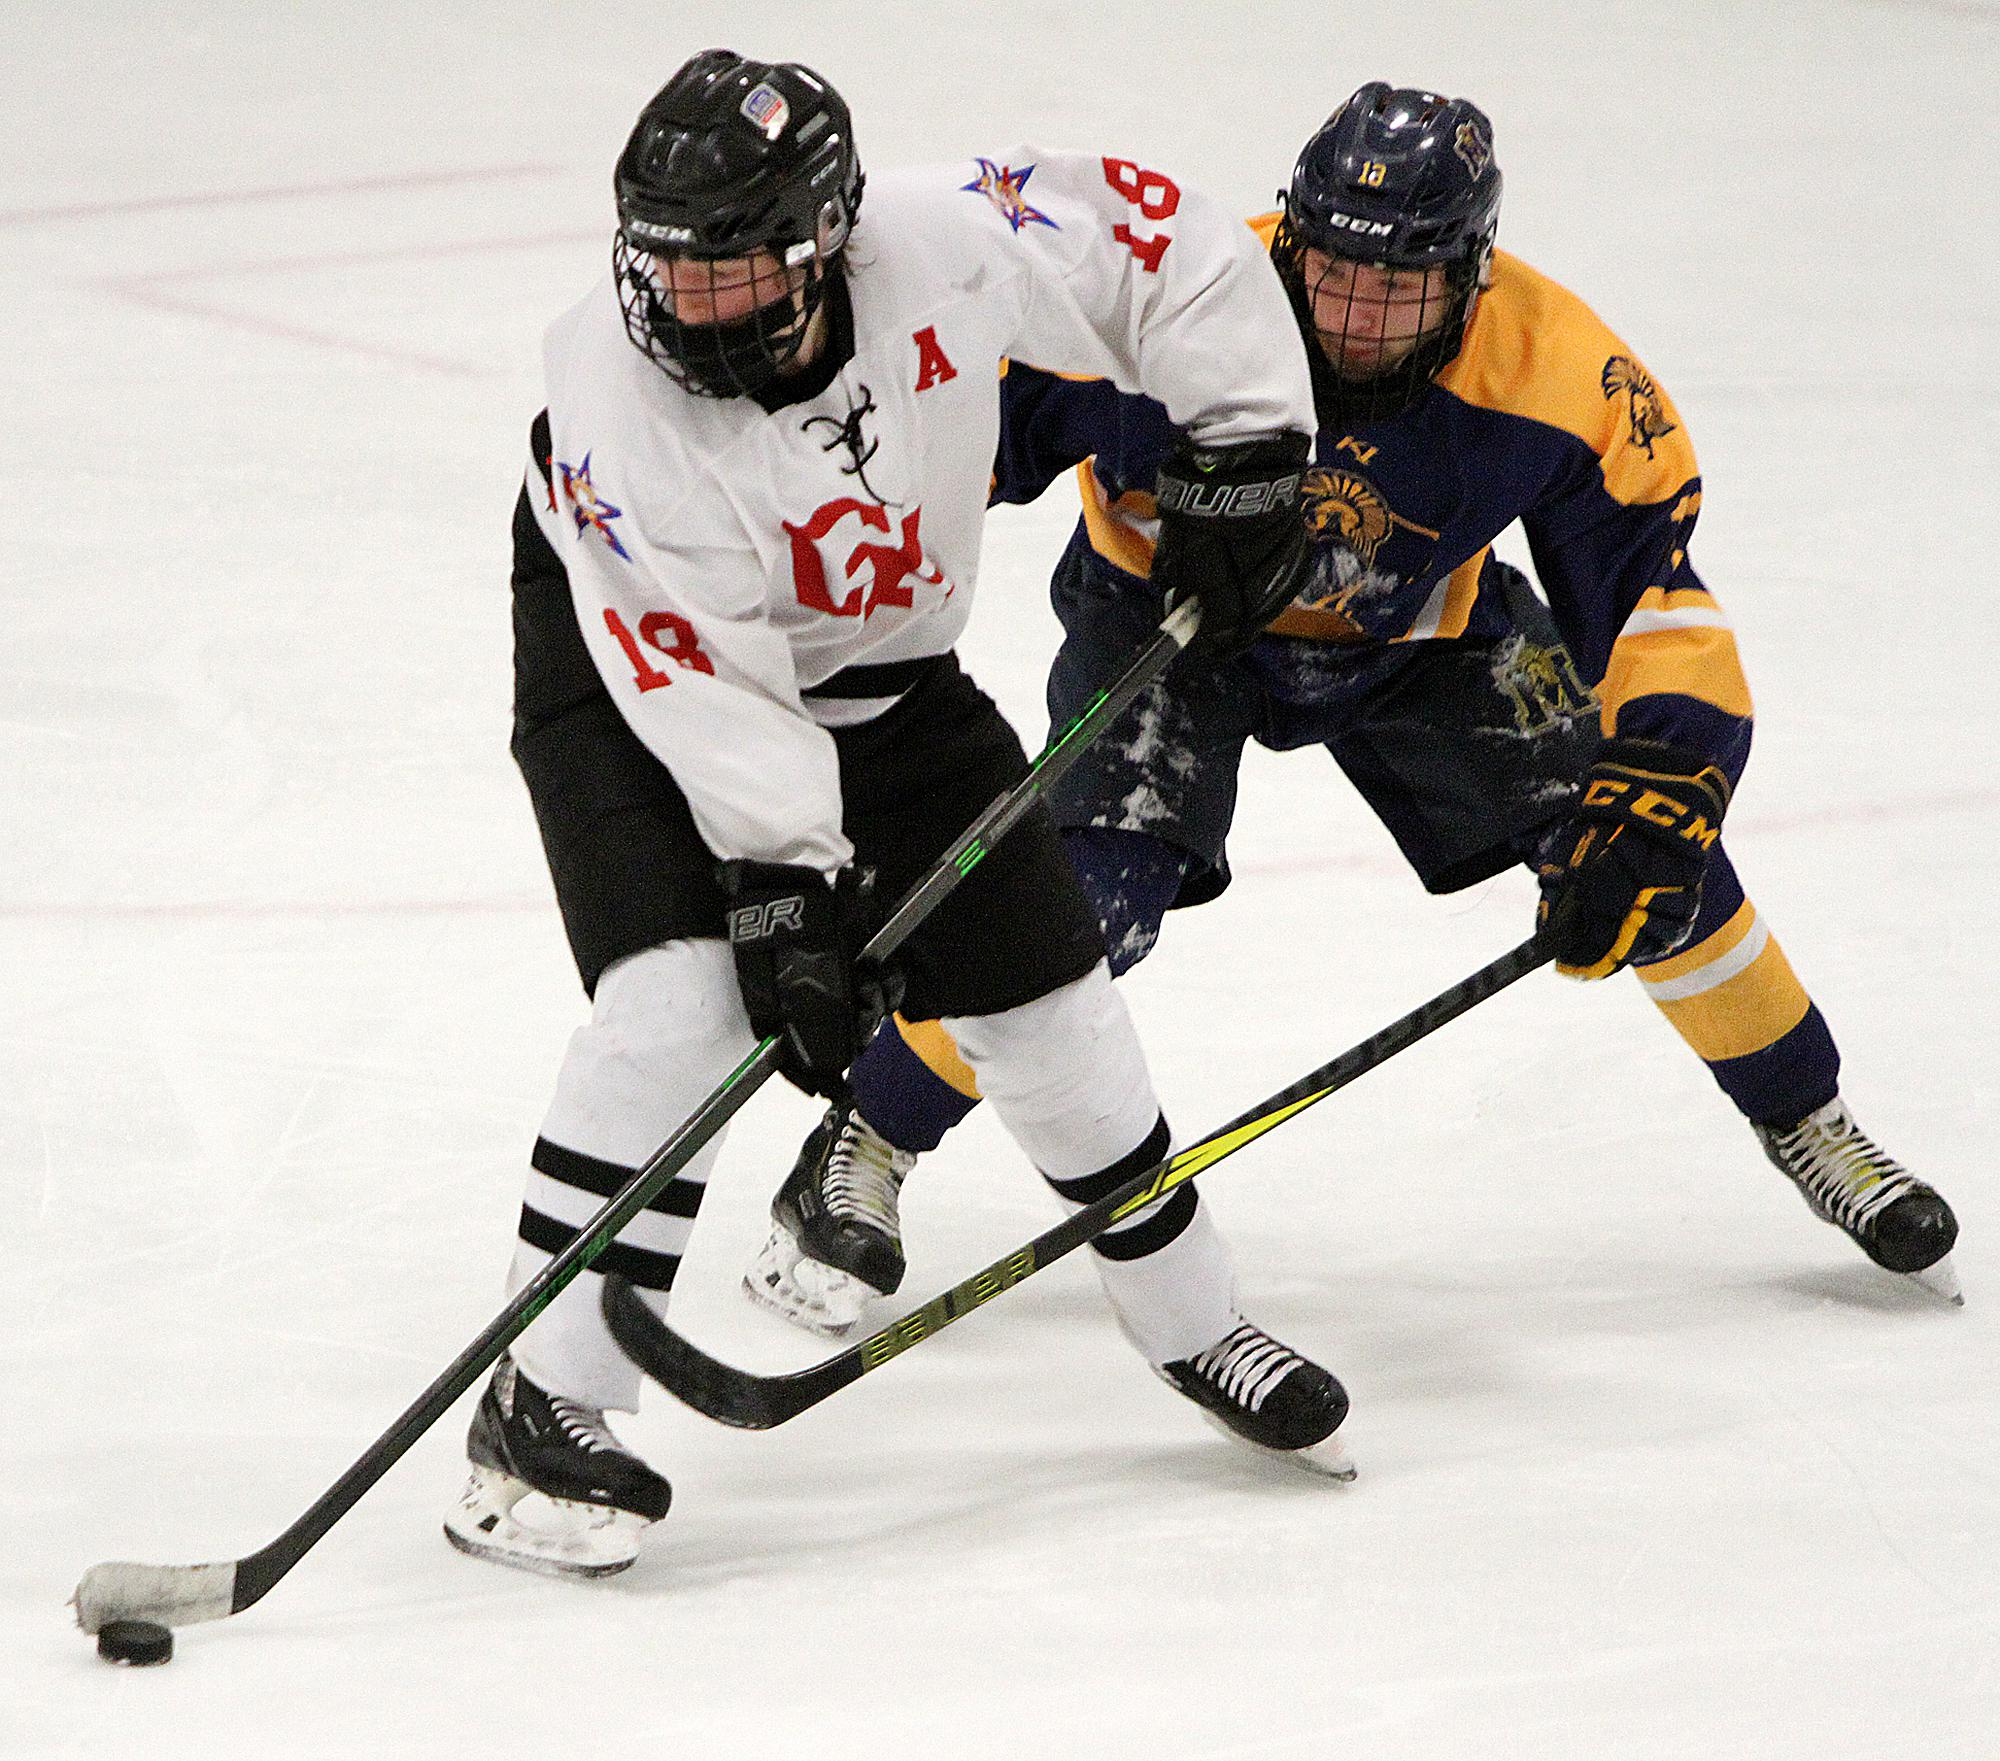 Gentry Academy senior center Nick Sajevic battles for the puck in the neutral zone with Mahtomedi's Ty Decker. Sajevic finished with three goals to lead the Stars to a 7-3 win. Photo by Drew Herron, SportsEngine